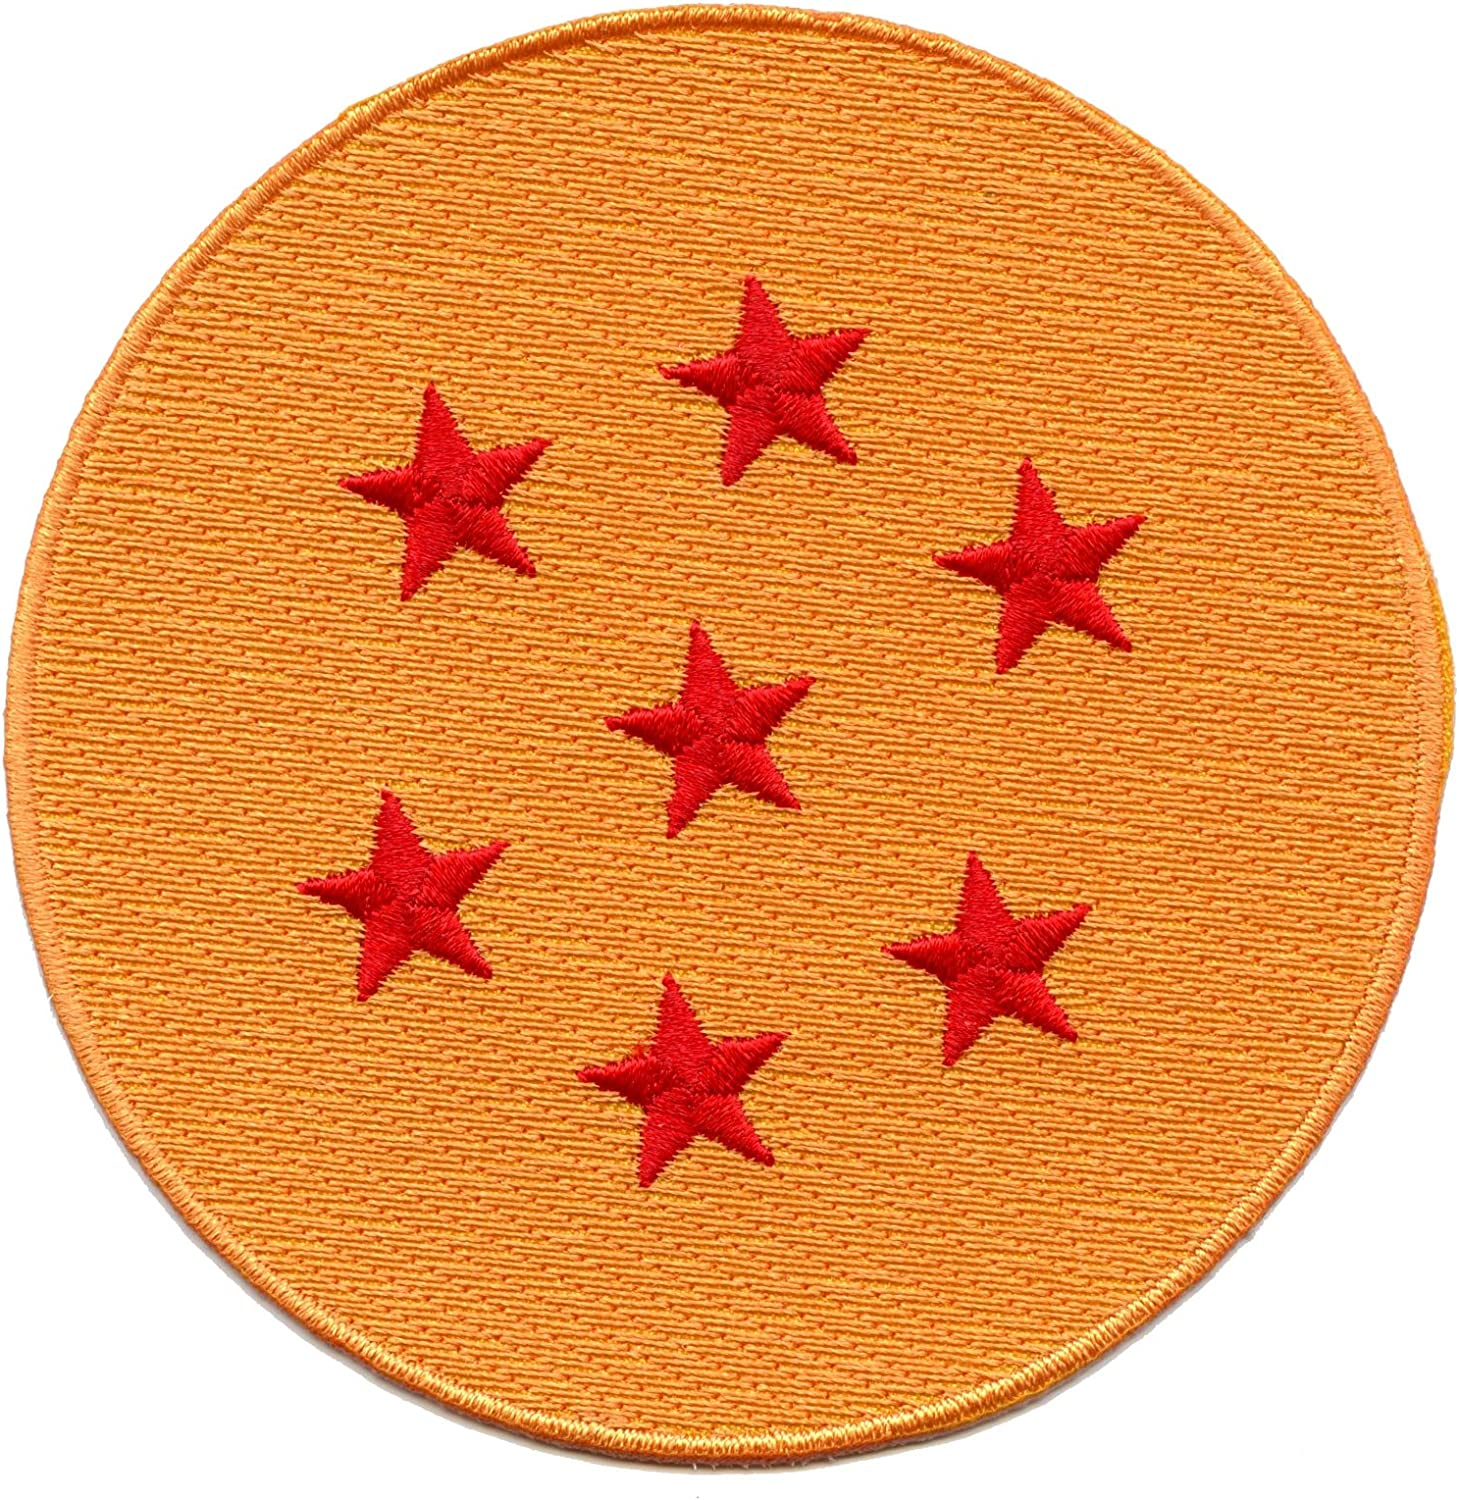 Applique Dragon Ball Z Patch Patch for Jackets Orange Embroidered Sew On Shirts Starry Cloud Yellow Iron On DIY